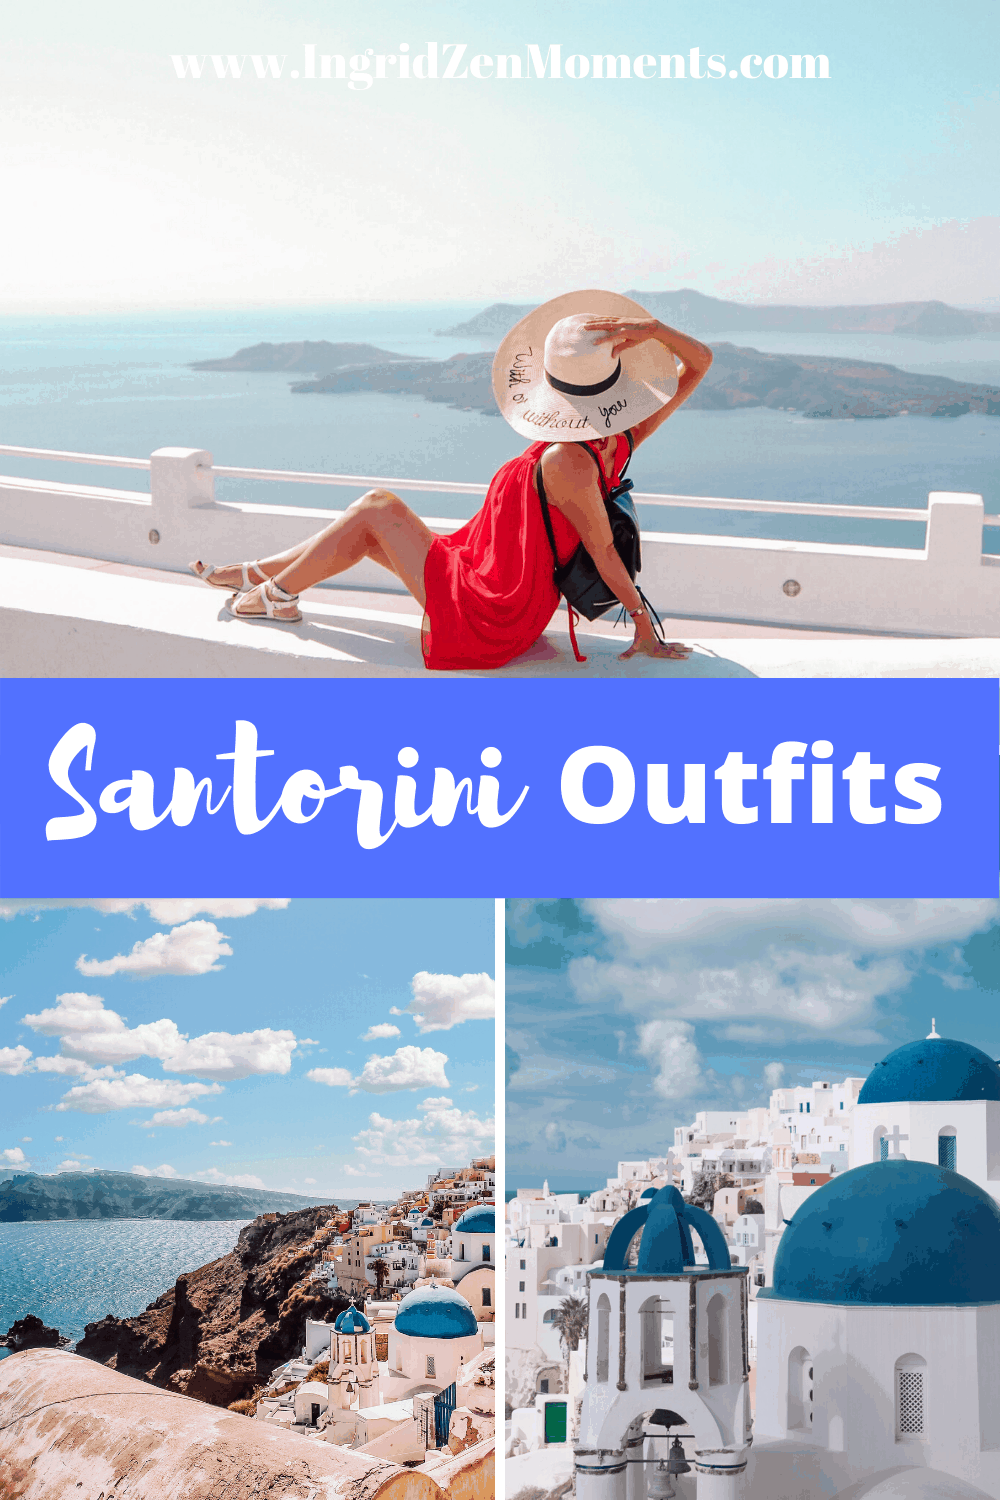 Your Ultimate guide to Santorini outfit ideas and what to pack for Santorini in Summer. You no longer have to wonder what to wear in Santorini for Spring or Summer, I give you some cute travel outfit ideas you will love for your Greece vacation in Santorini Island. I come to help also with some amazing Santorini photography spots for that Instagram perfect Santorini picture. santorini greece | greece outfit ideas | what to wear greece outfit | summer in greece outfit | greece outfit fashion | santorini greece outfits | santorini outfit ideas summer | what to wear in santorini summer